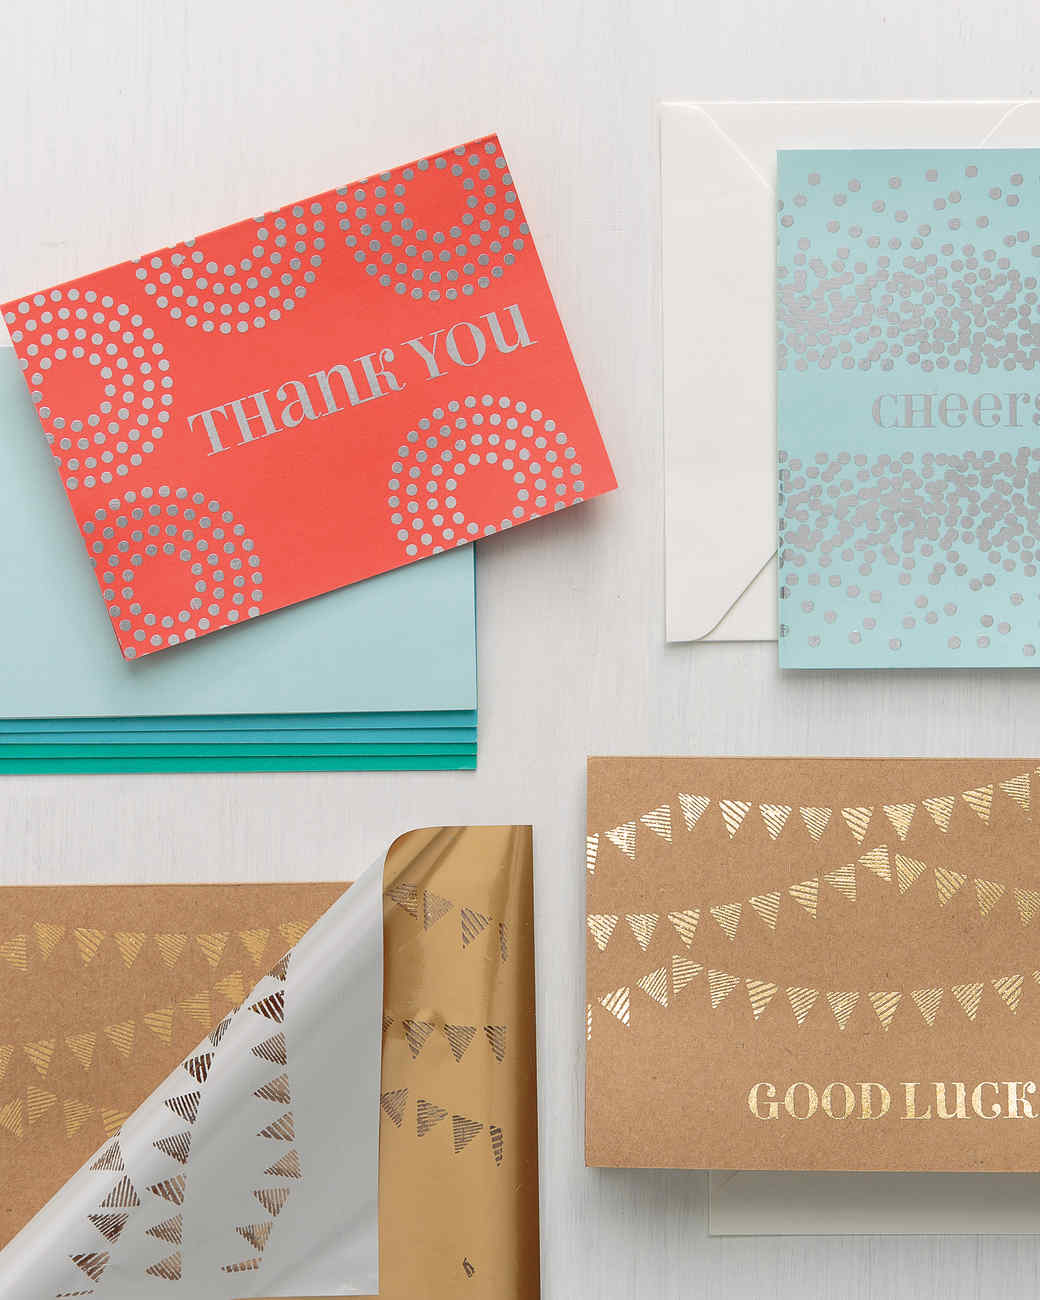 mscrafts-giftguide-diyenthusiast-foiling-1114.jpg